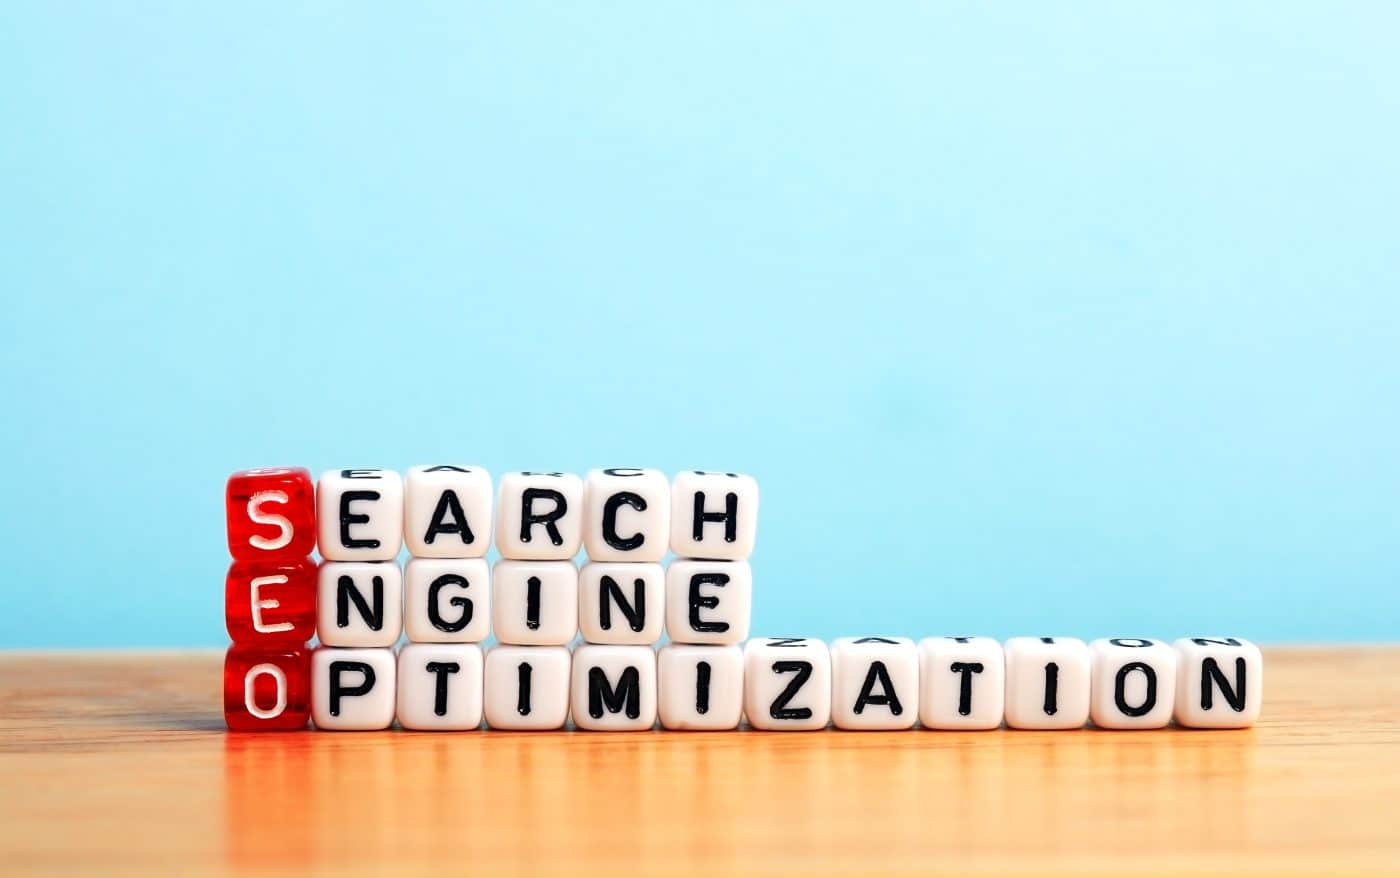 Search Engine Optimization displayed on dices